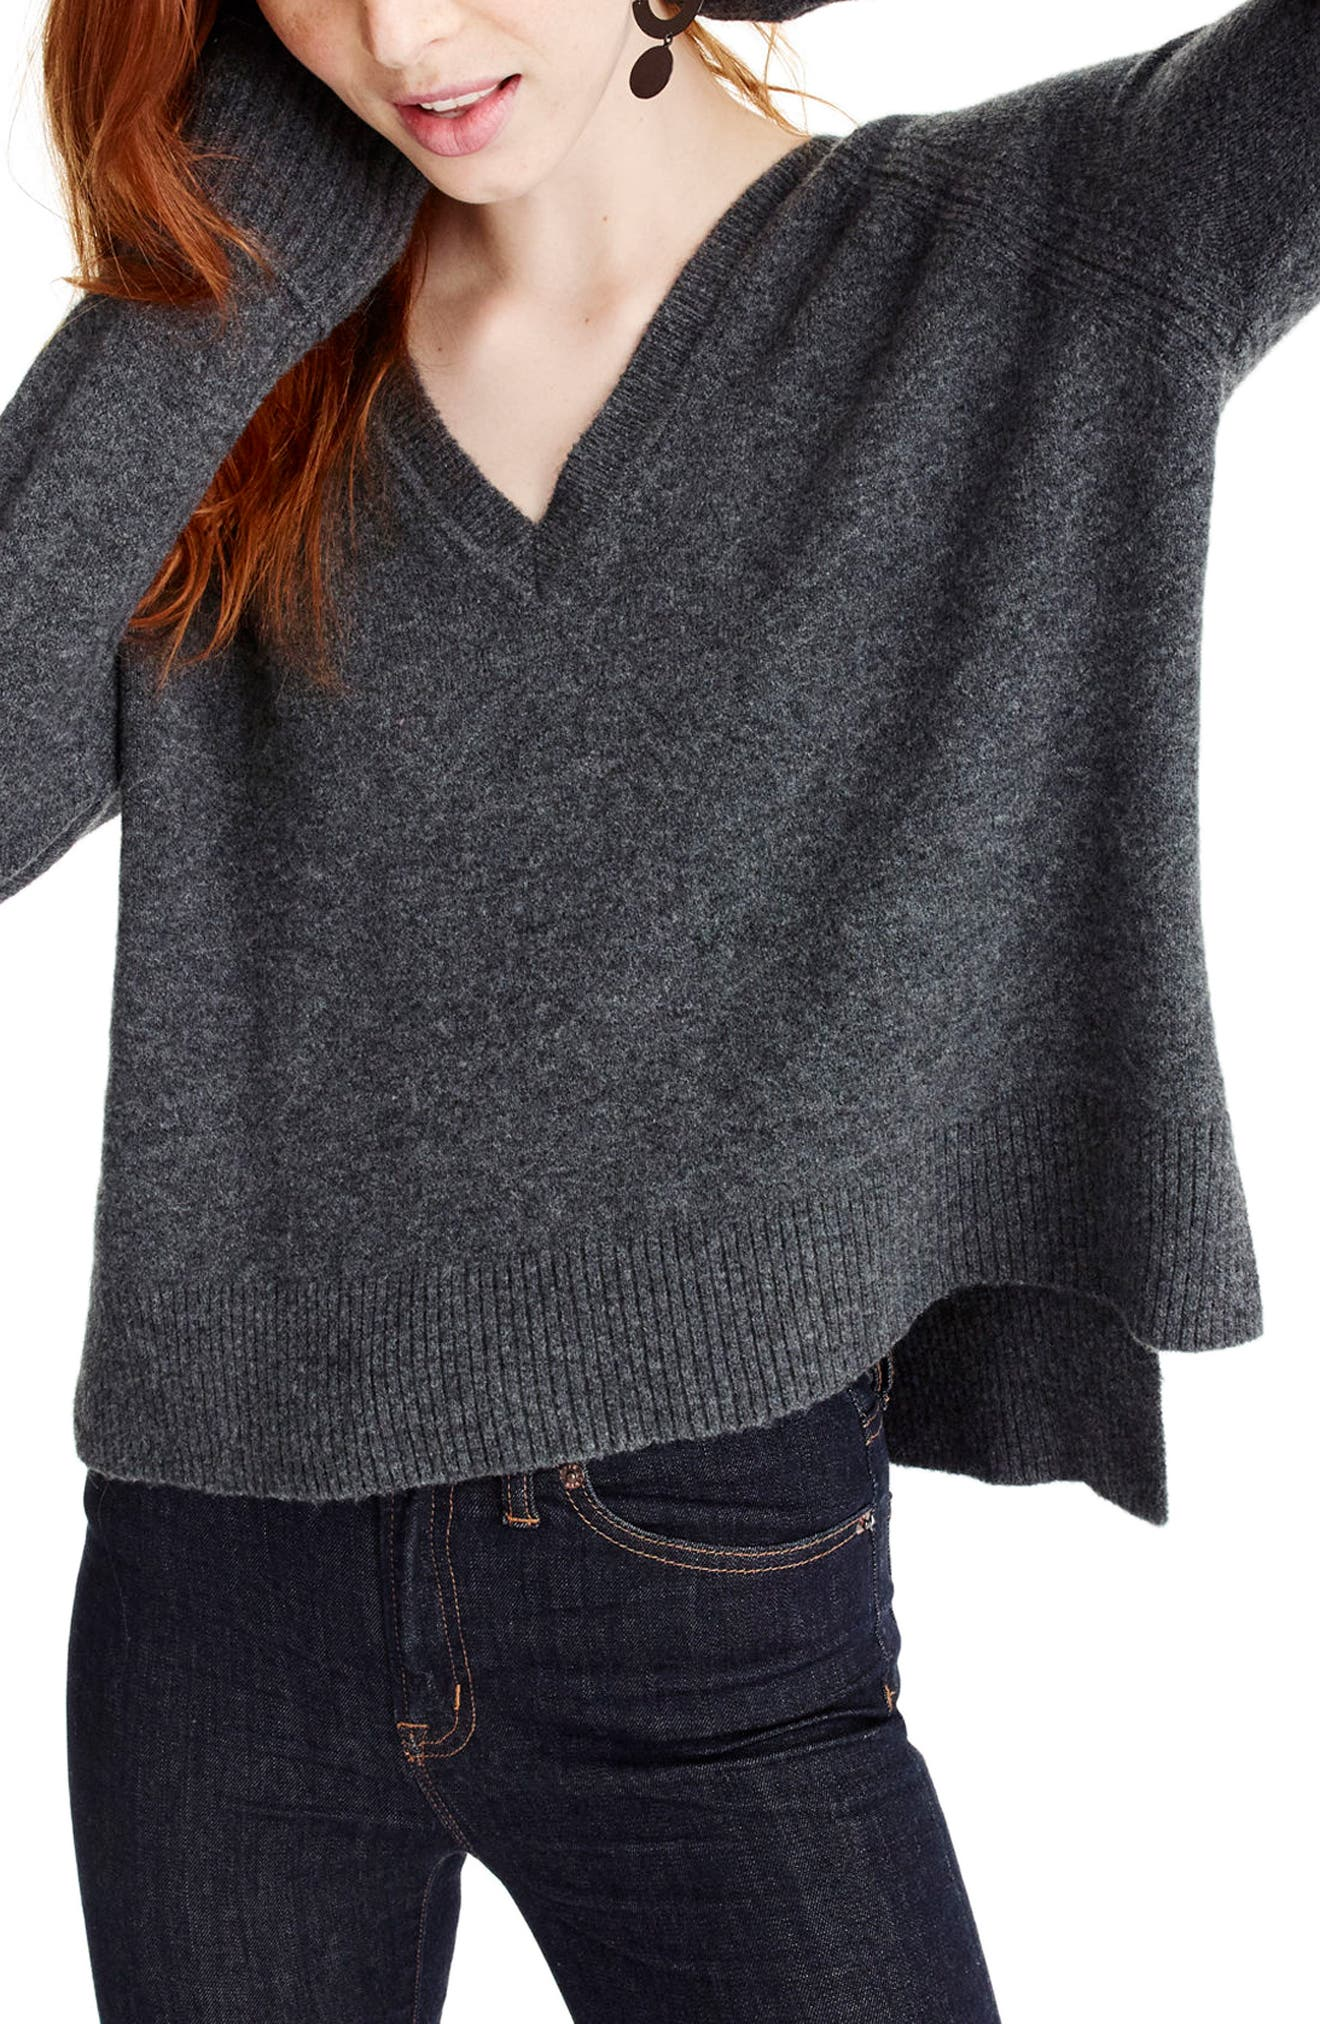 J.Crew Supersoft Yarn V-Neck Sweater,                         Main,                         color, Heather Carbon